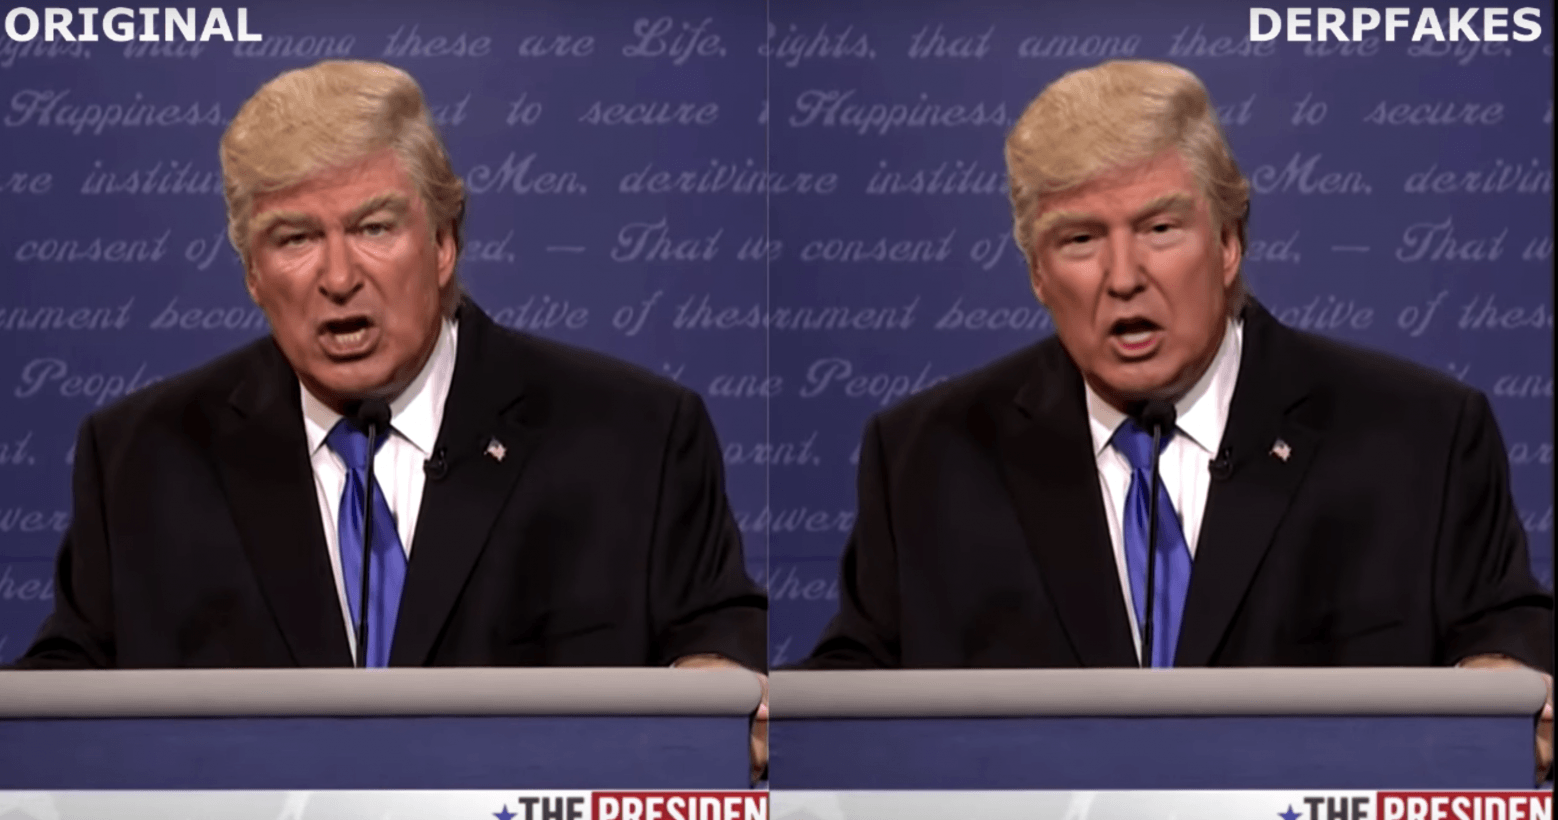 Most In Fake Algorithm Donald Trump Yet Nails Convincing Deepfakes